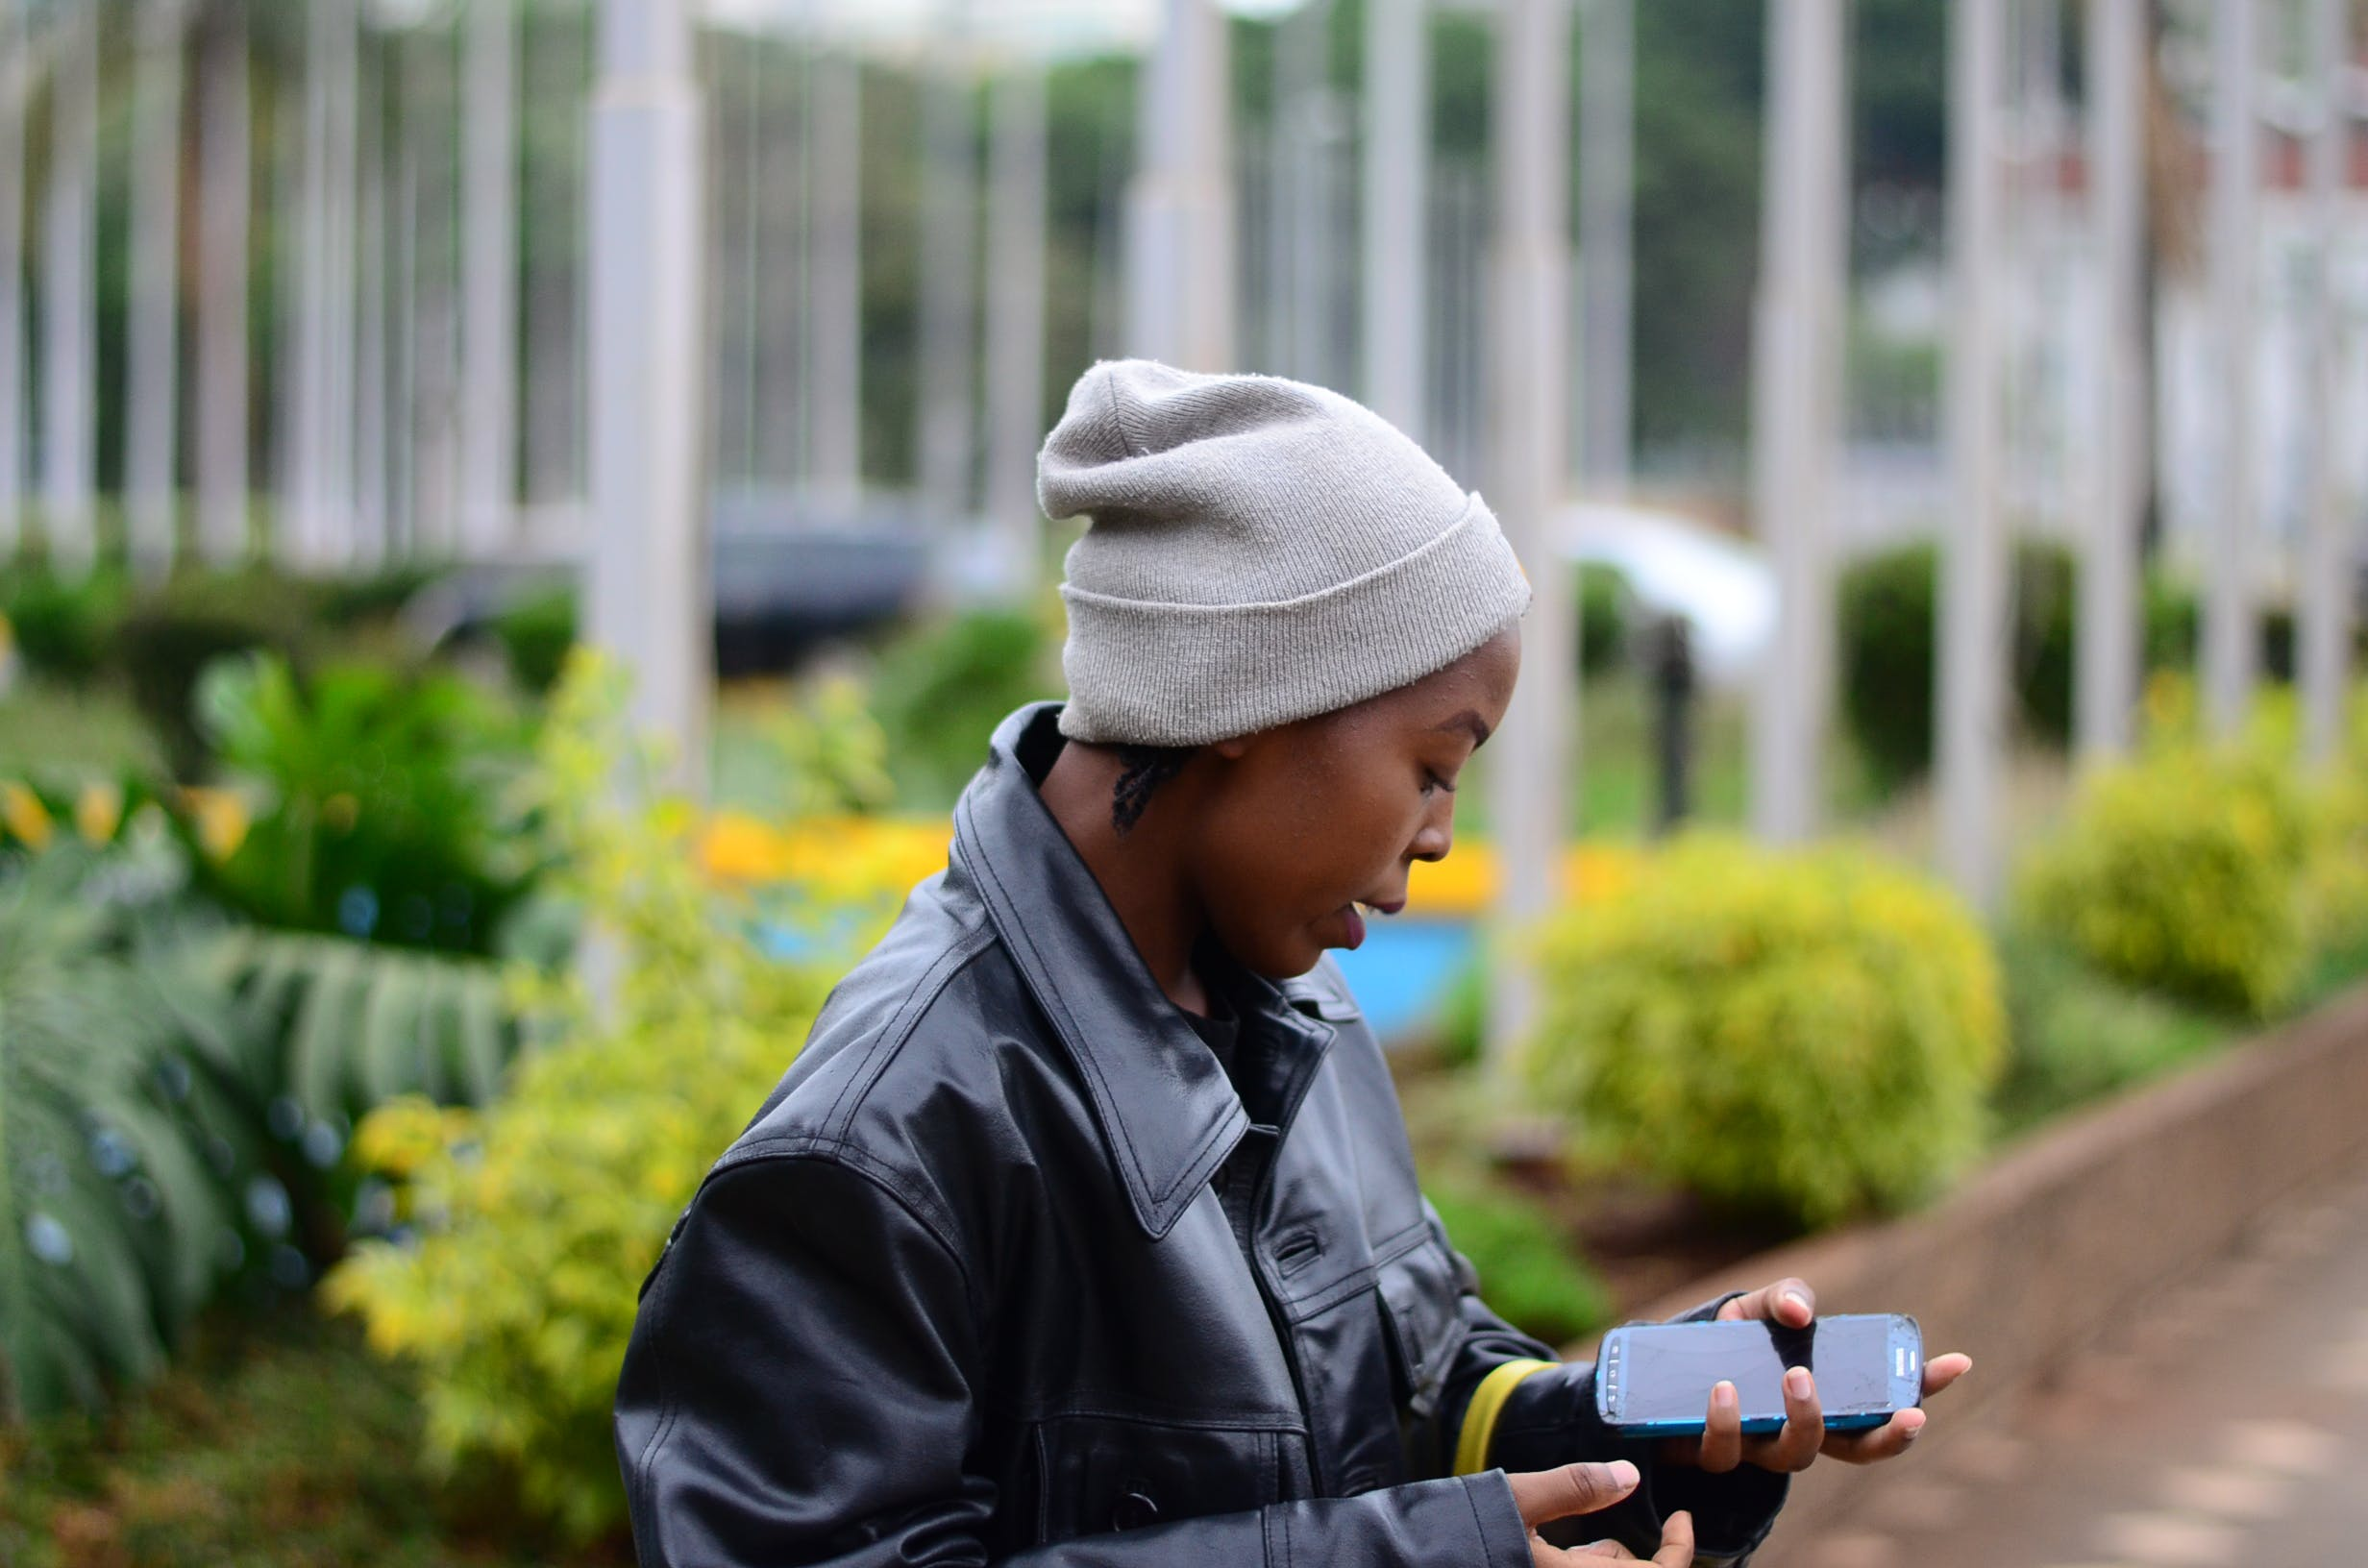 Photo Of Woman Holding Smartphone